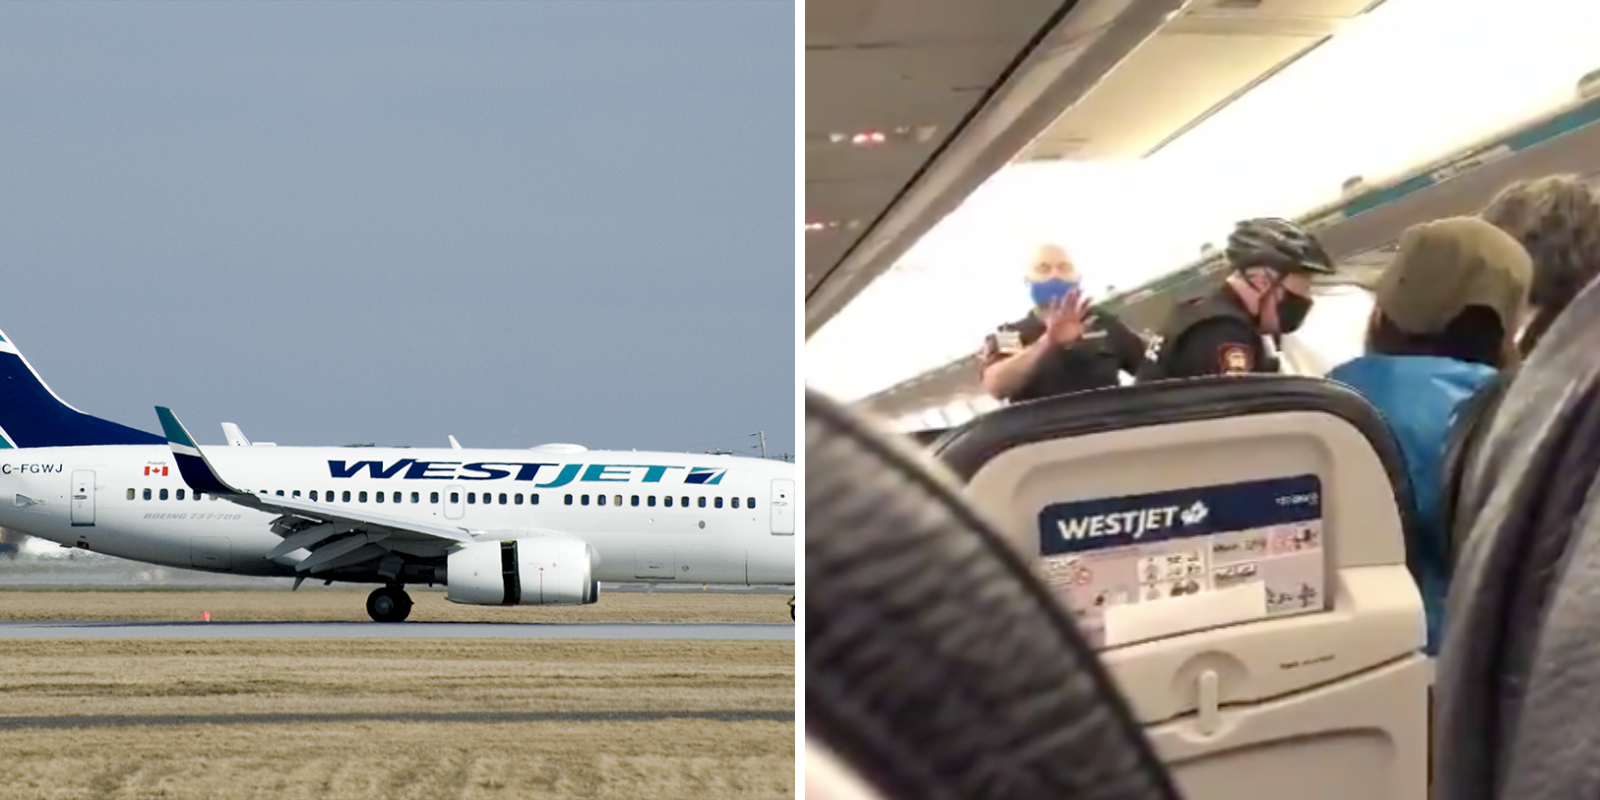 WATCH: WestJet grounds flight after attendant attempted to force face mask on 19-month-old baby